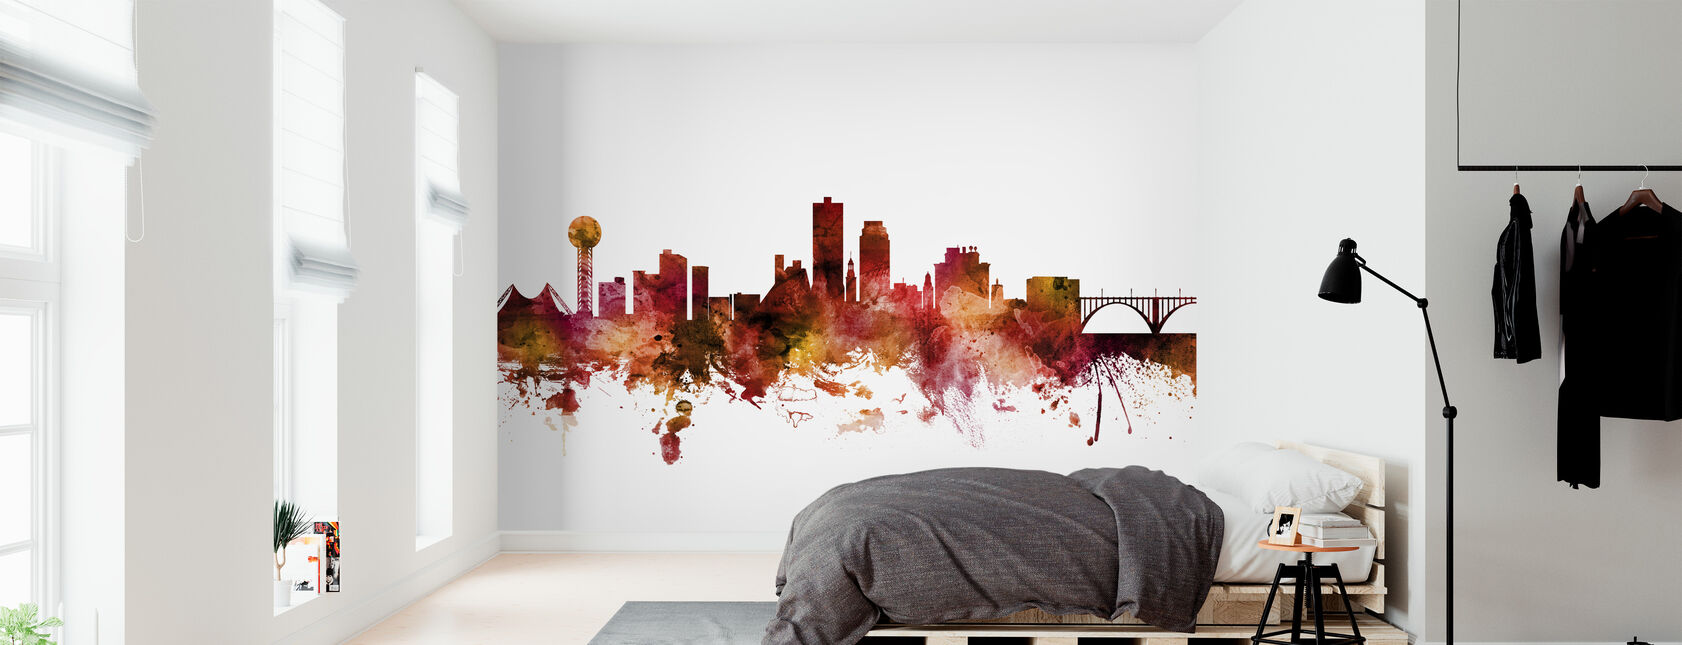 Knoxville Tennessee Skyline - Wallpaper - Bedroom